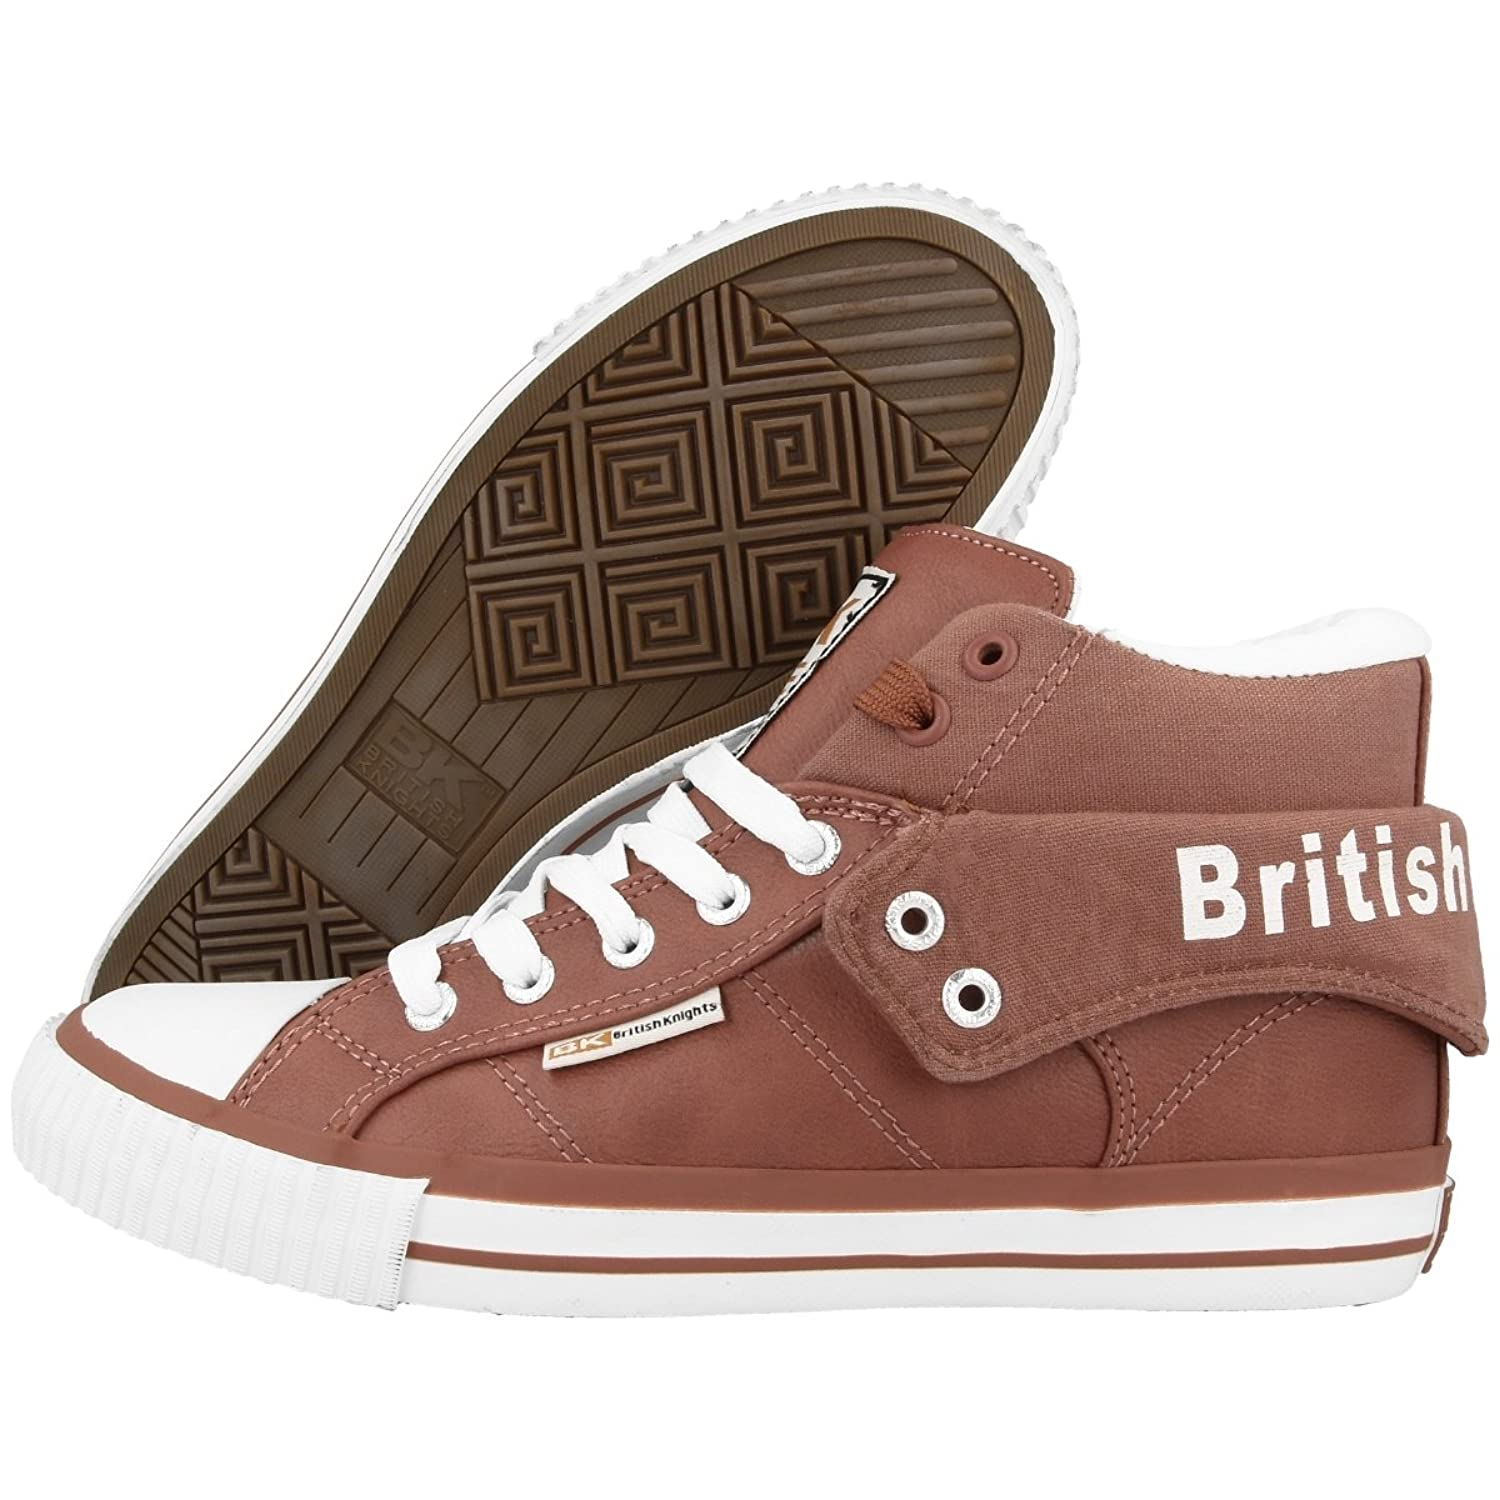 British Knights Roco Bk Schuhe High Top Sneaker Rust B34-3736-20 Mid Boots 7fBV1SyhS